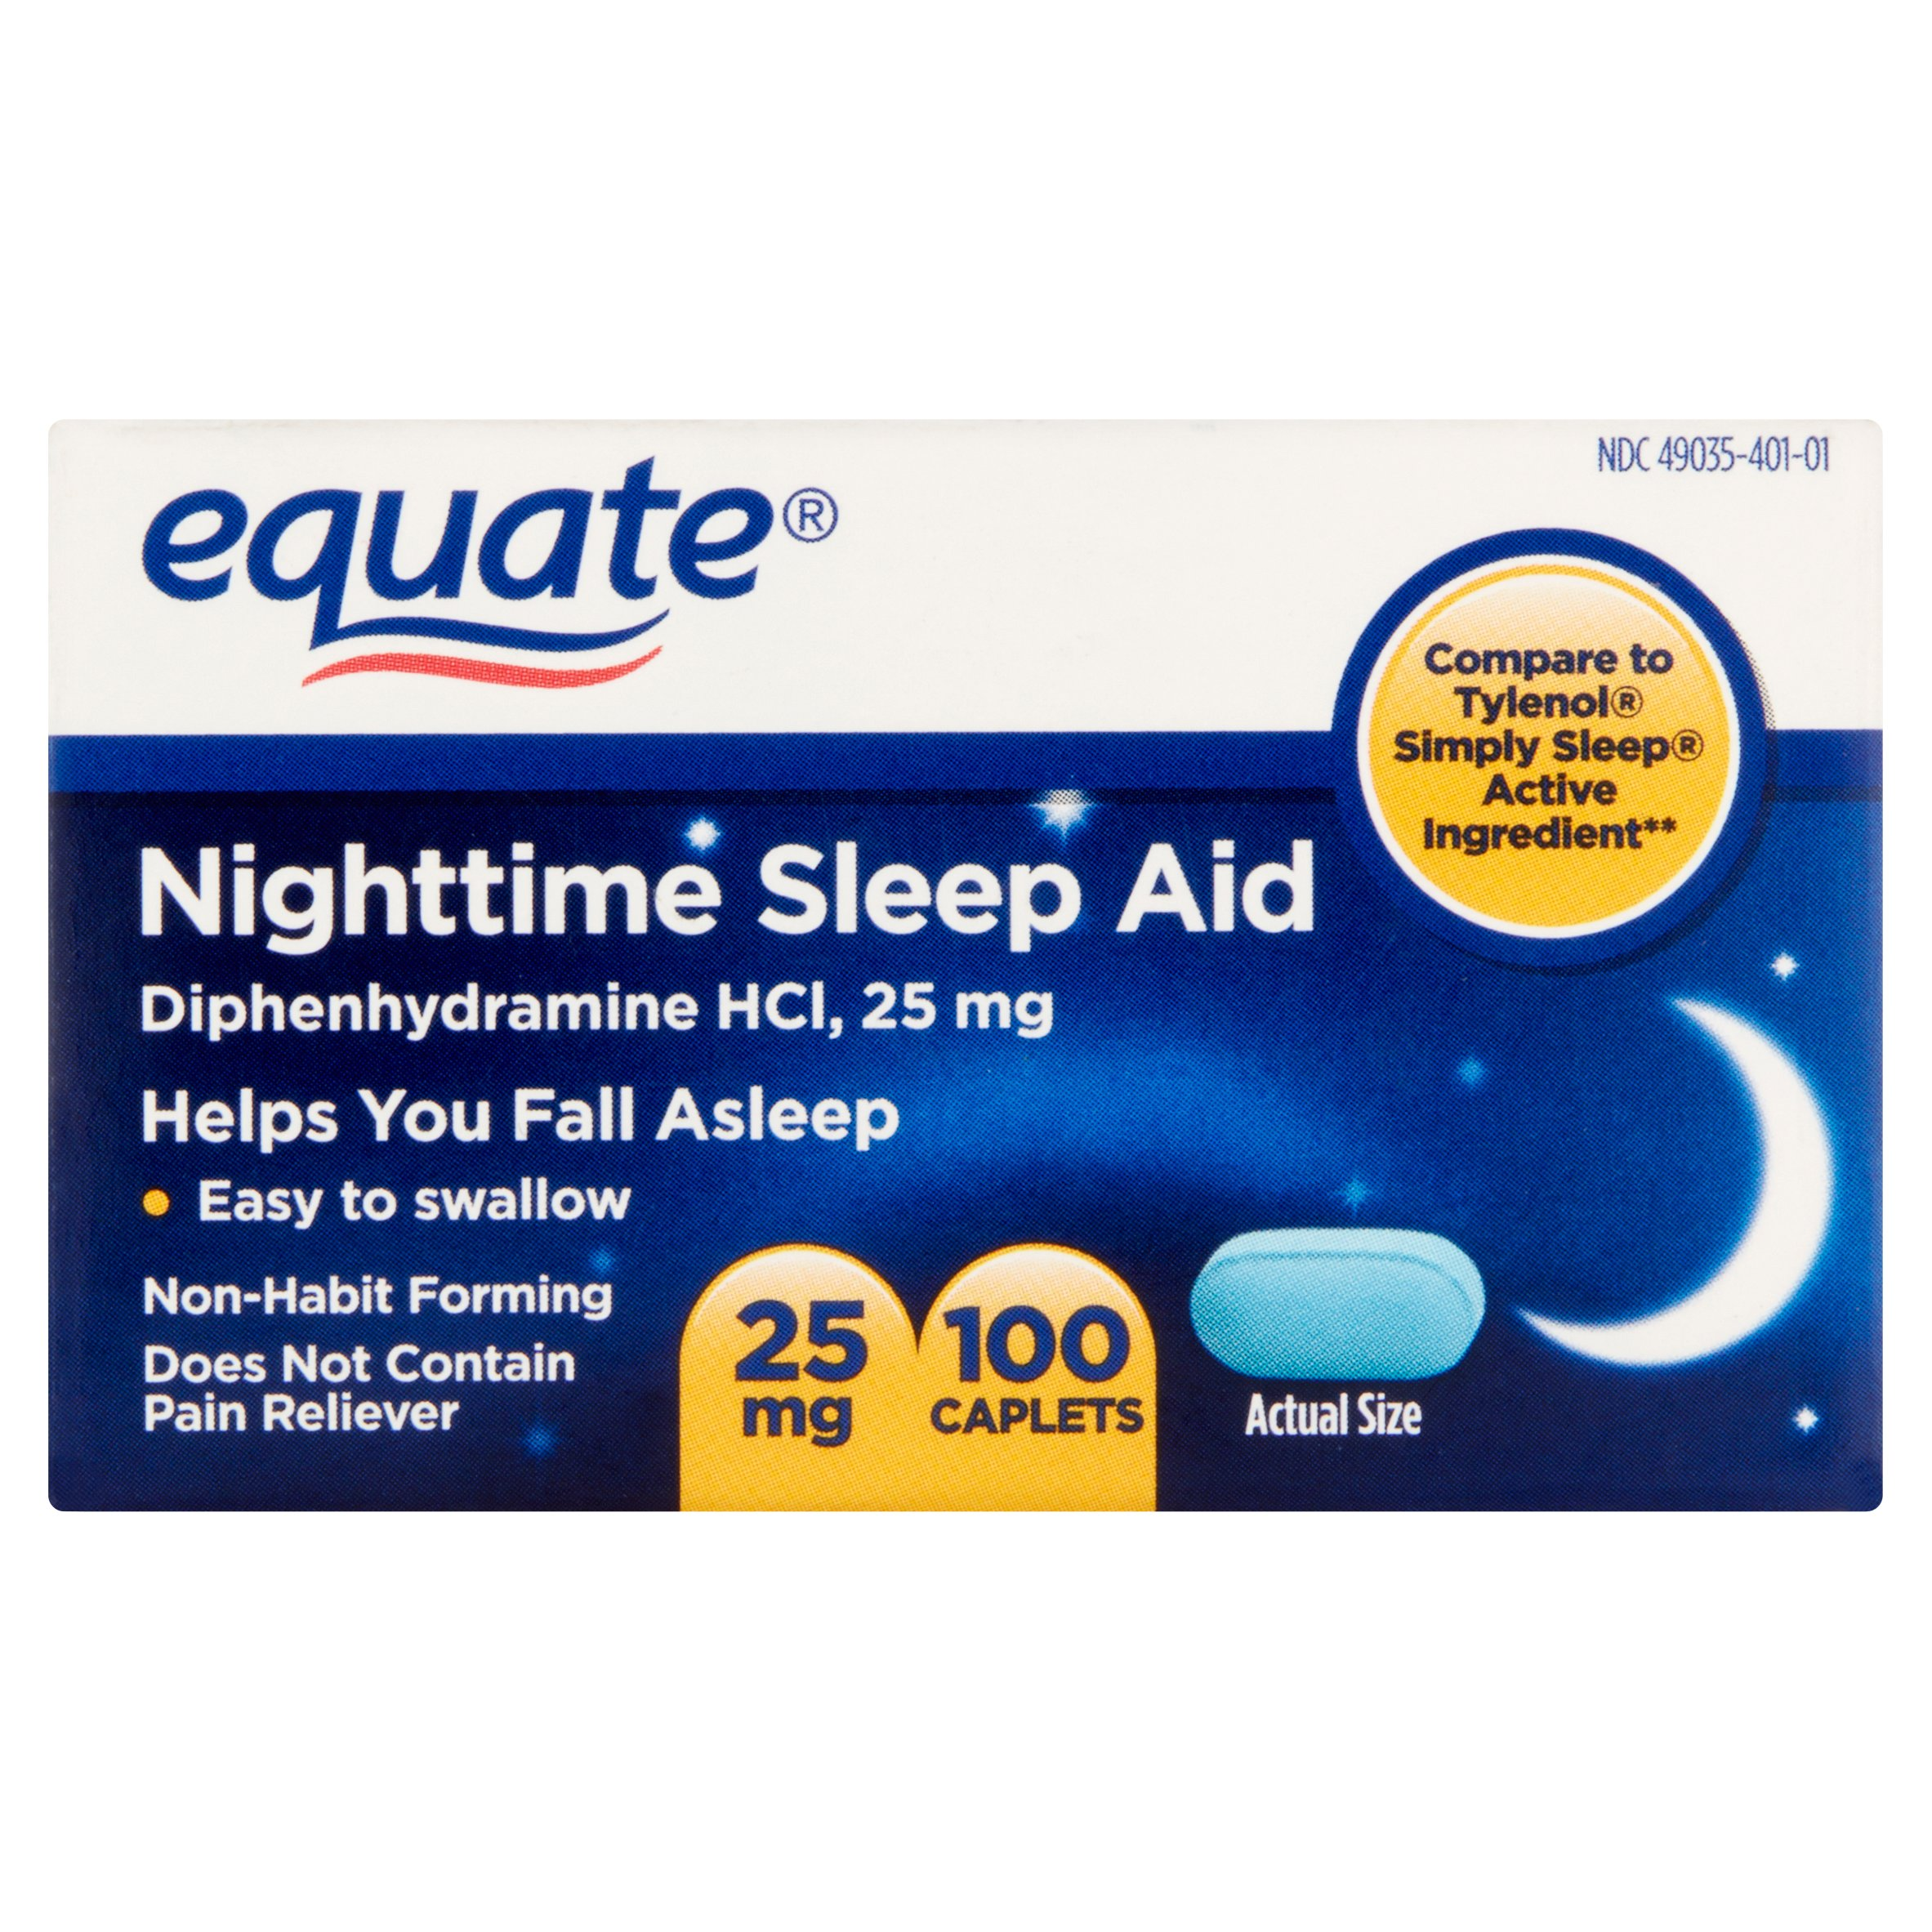 Equate Nighttime Sleep Aid Diphenhydramine HCl Caplets, 25 mg, 100 Ct